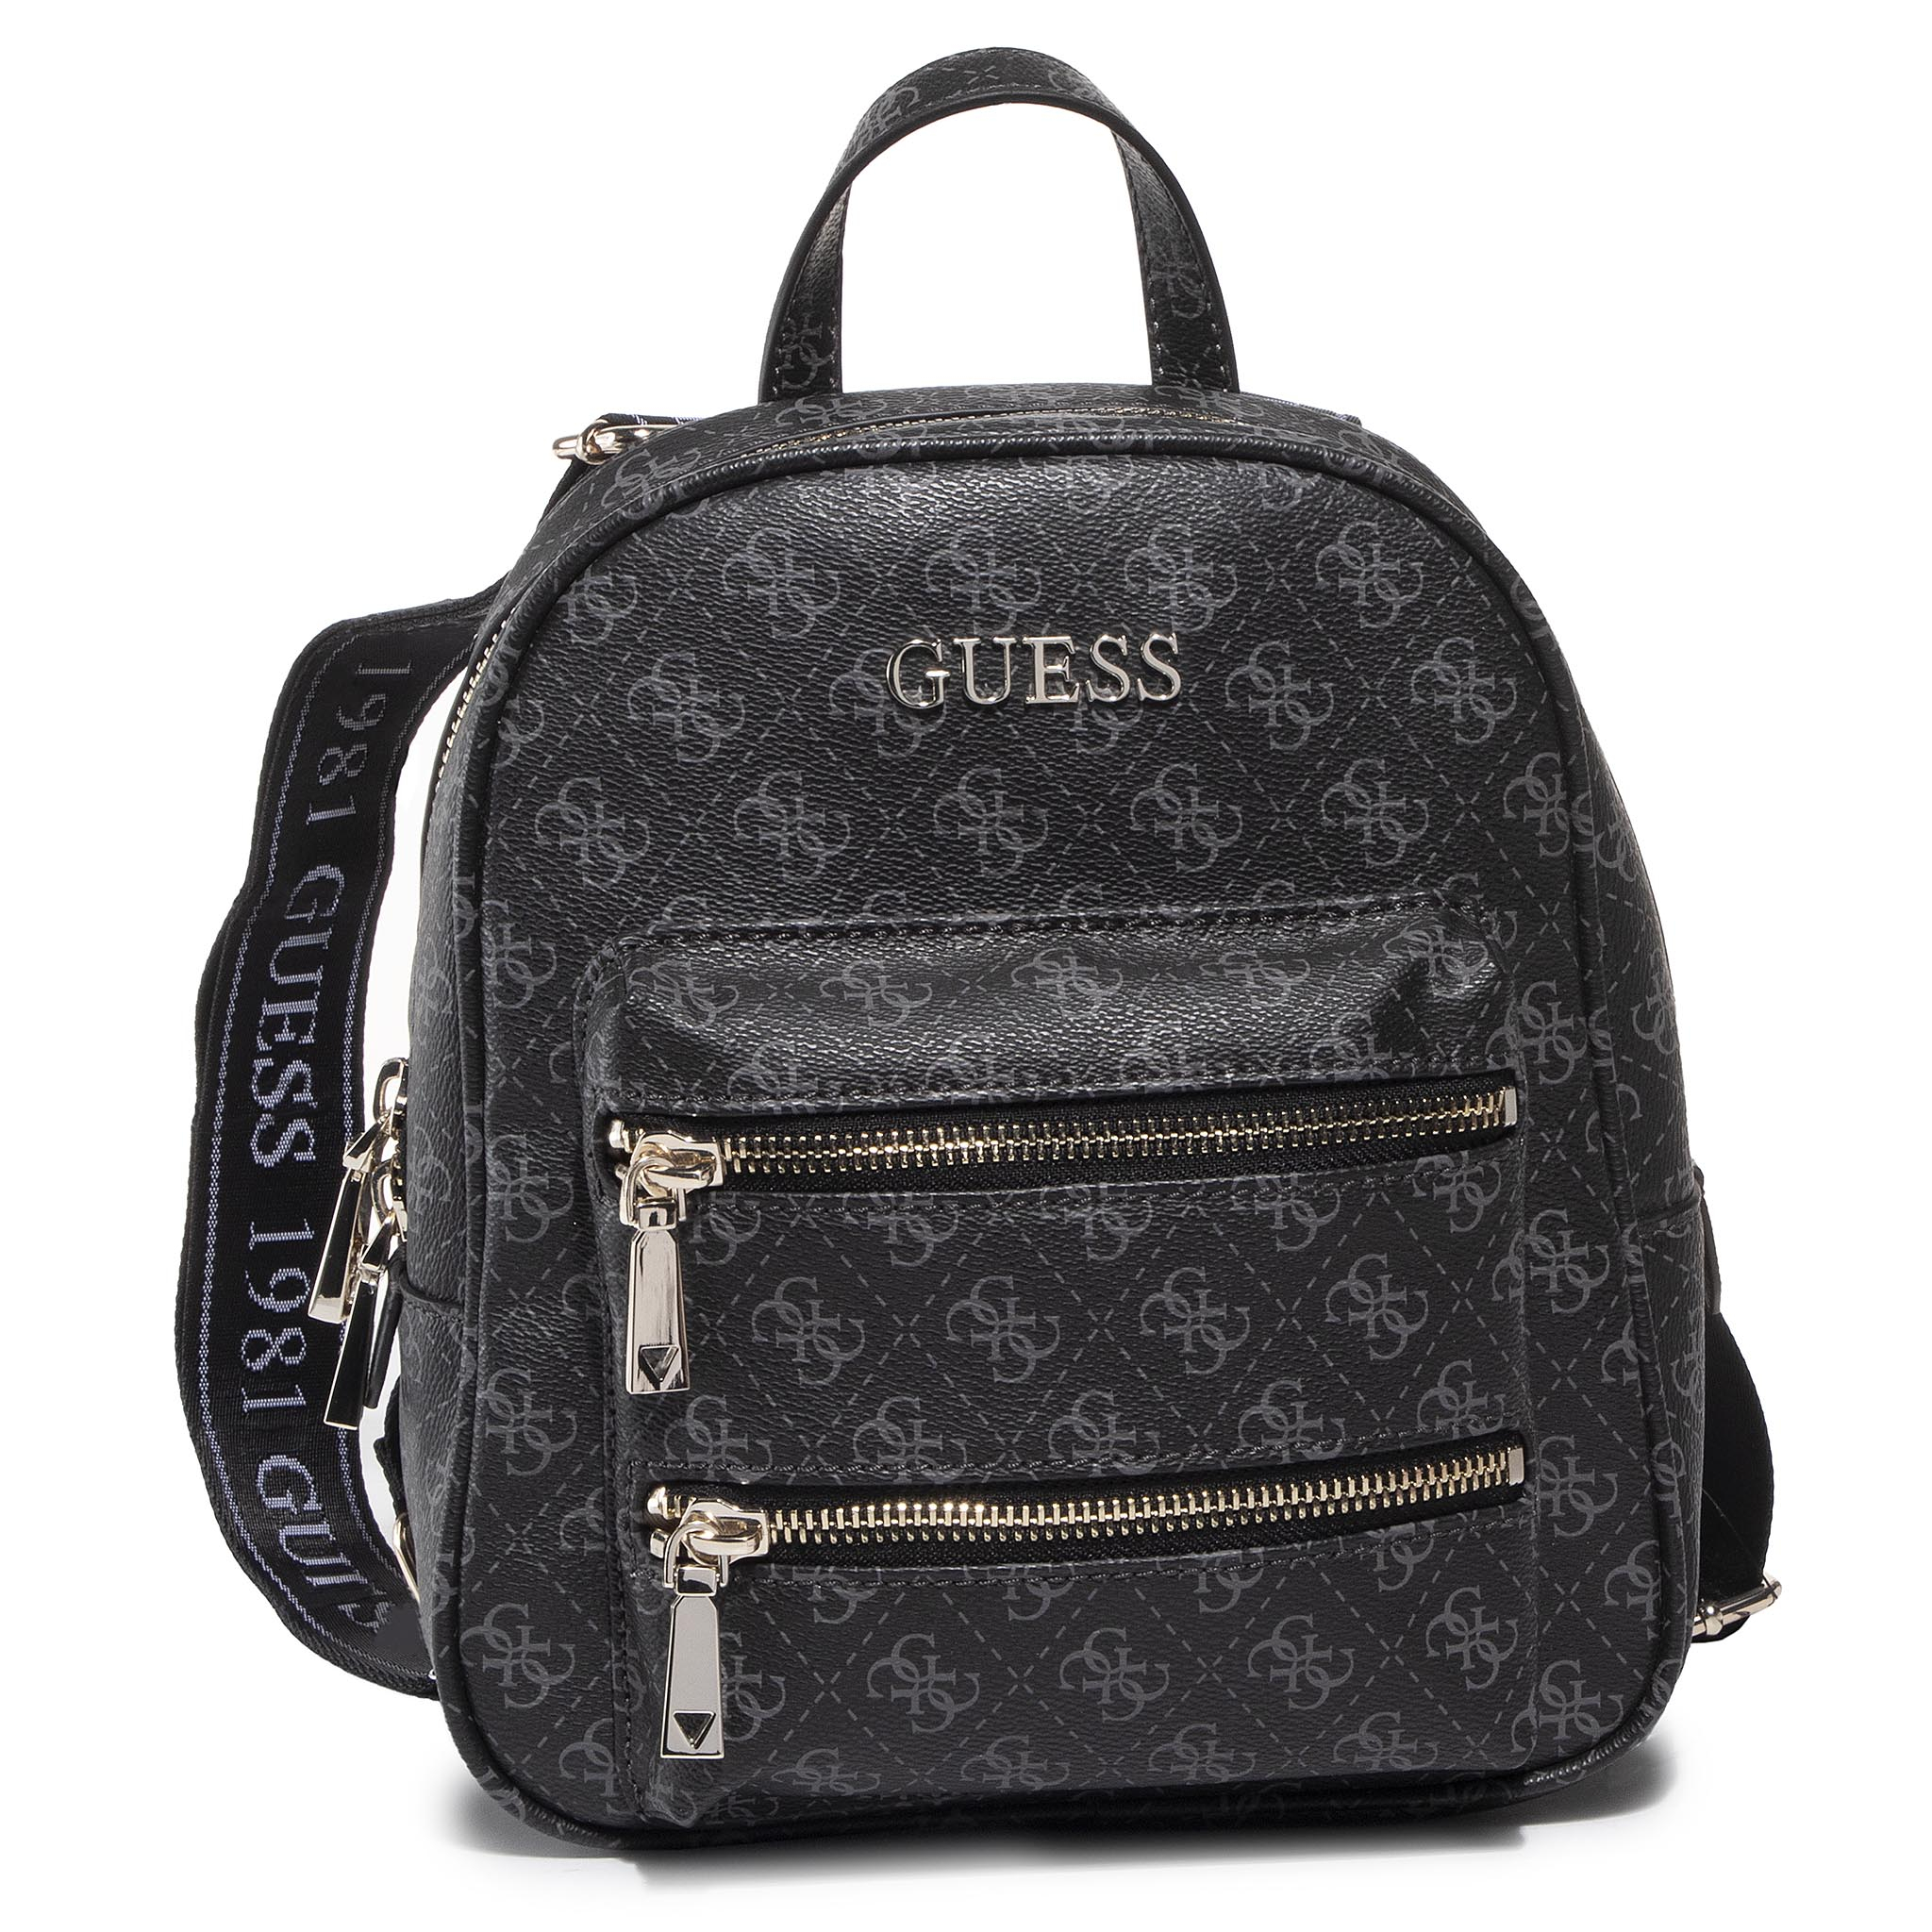 Rucsac Guess - Caley (SQ) Hwsq76 74320 Coa imagine epantofi.ro 2021